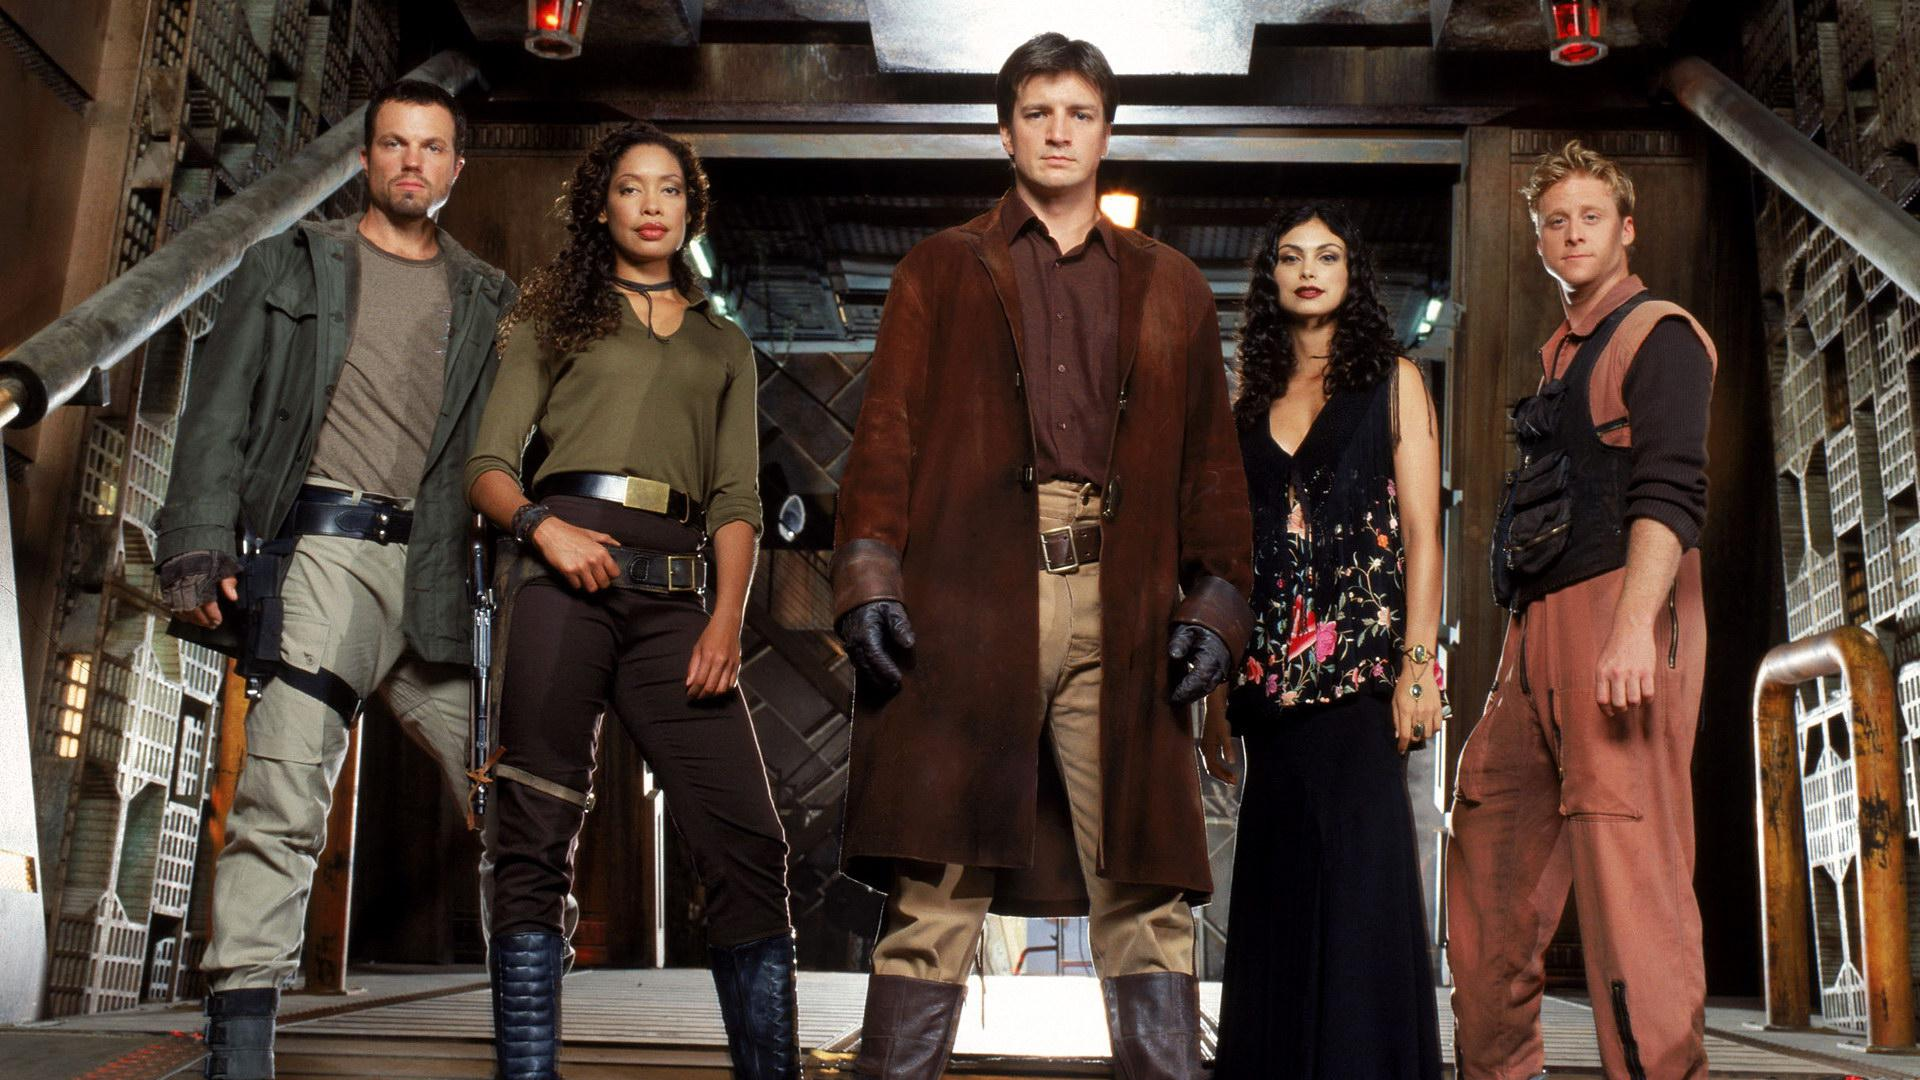 Joss Whedon's Firefly is coming back as a series of novels